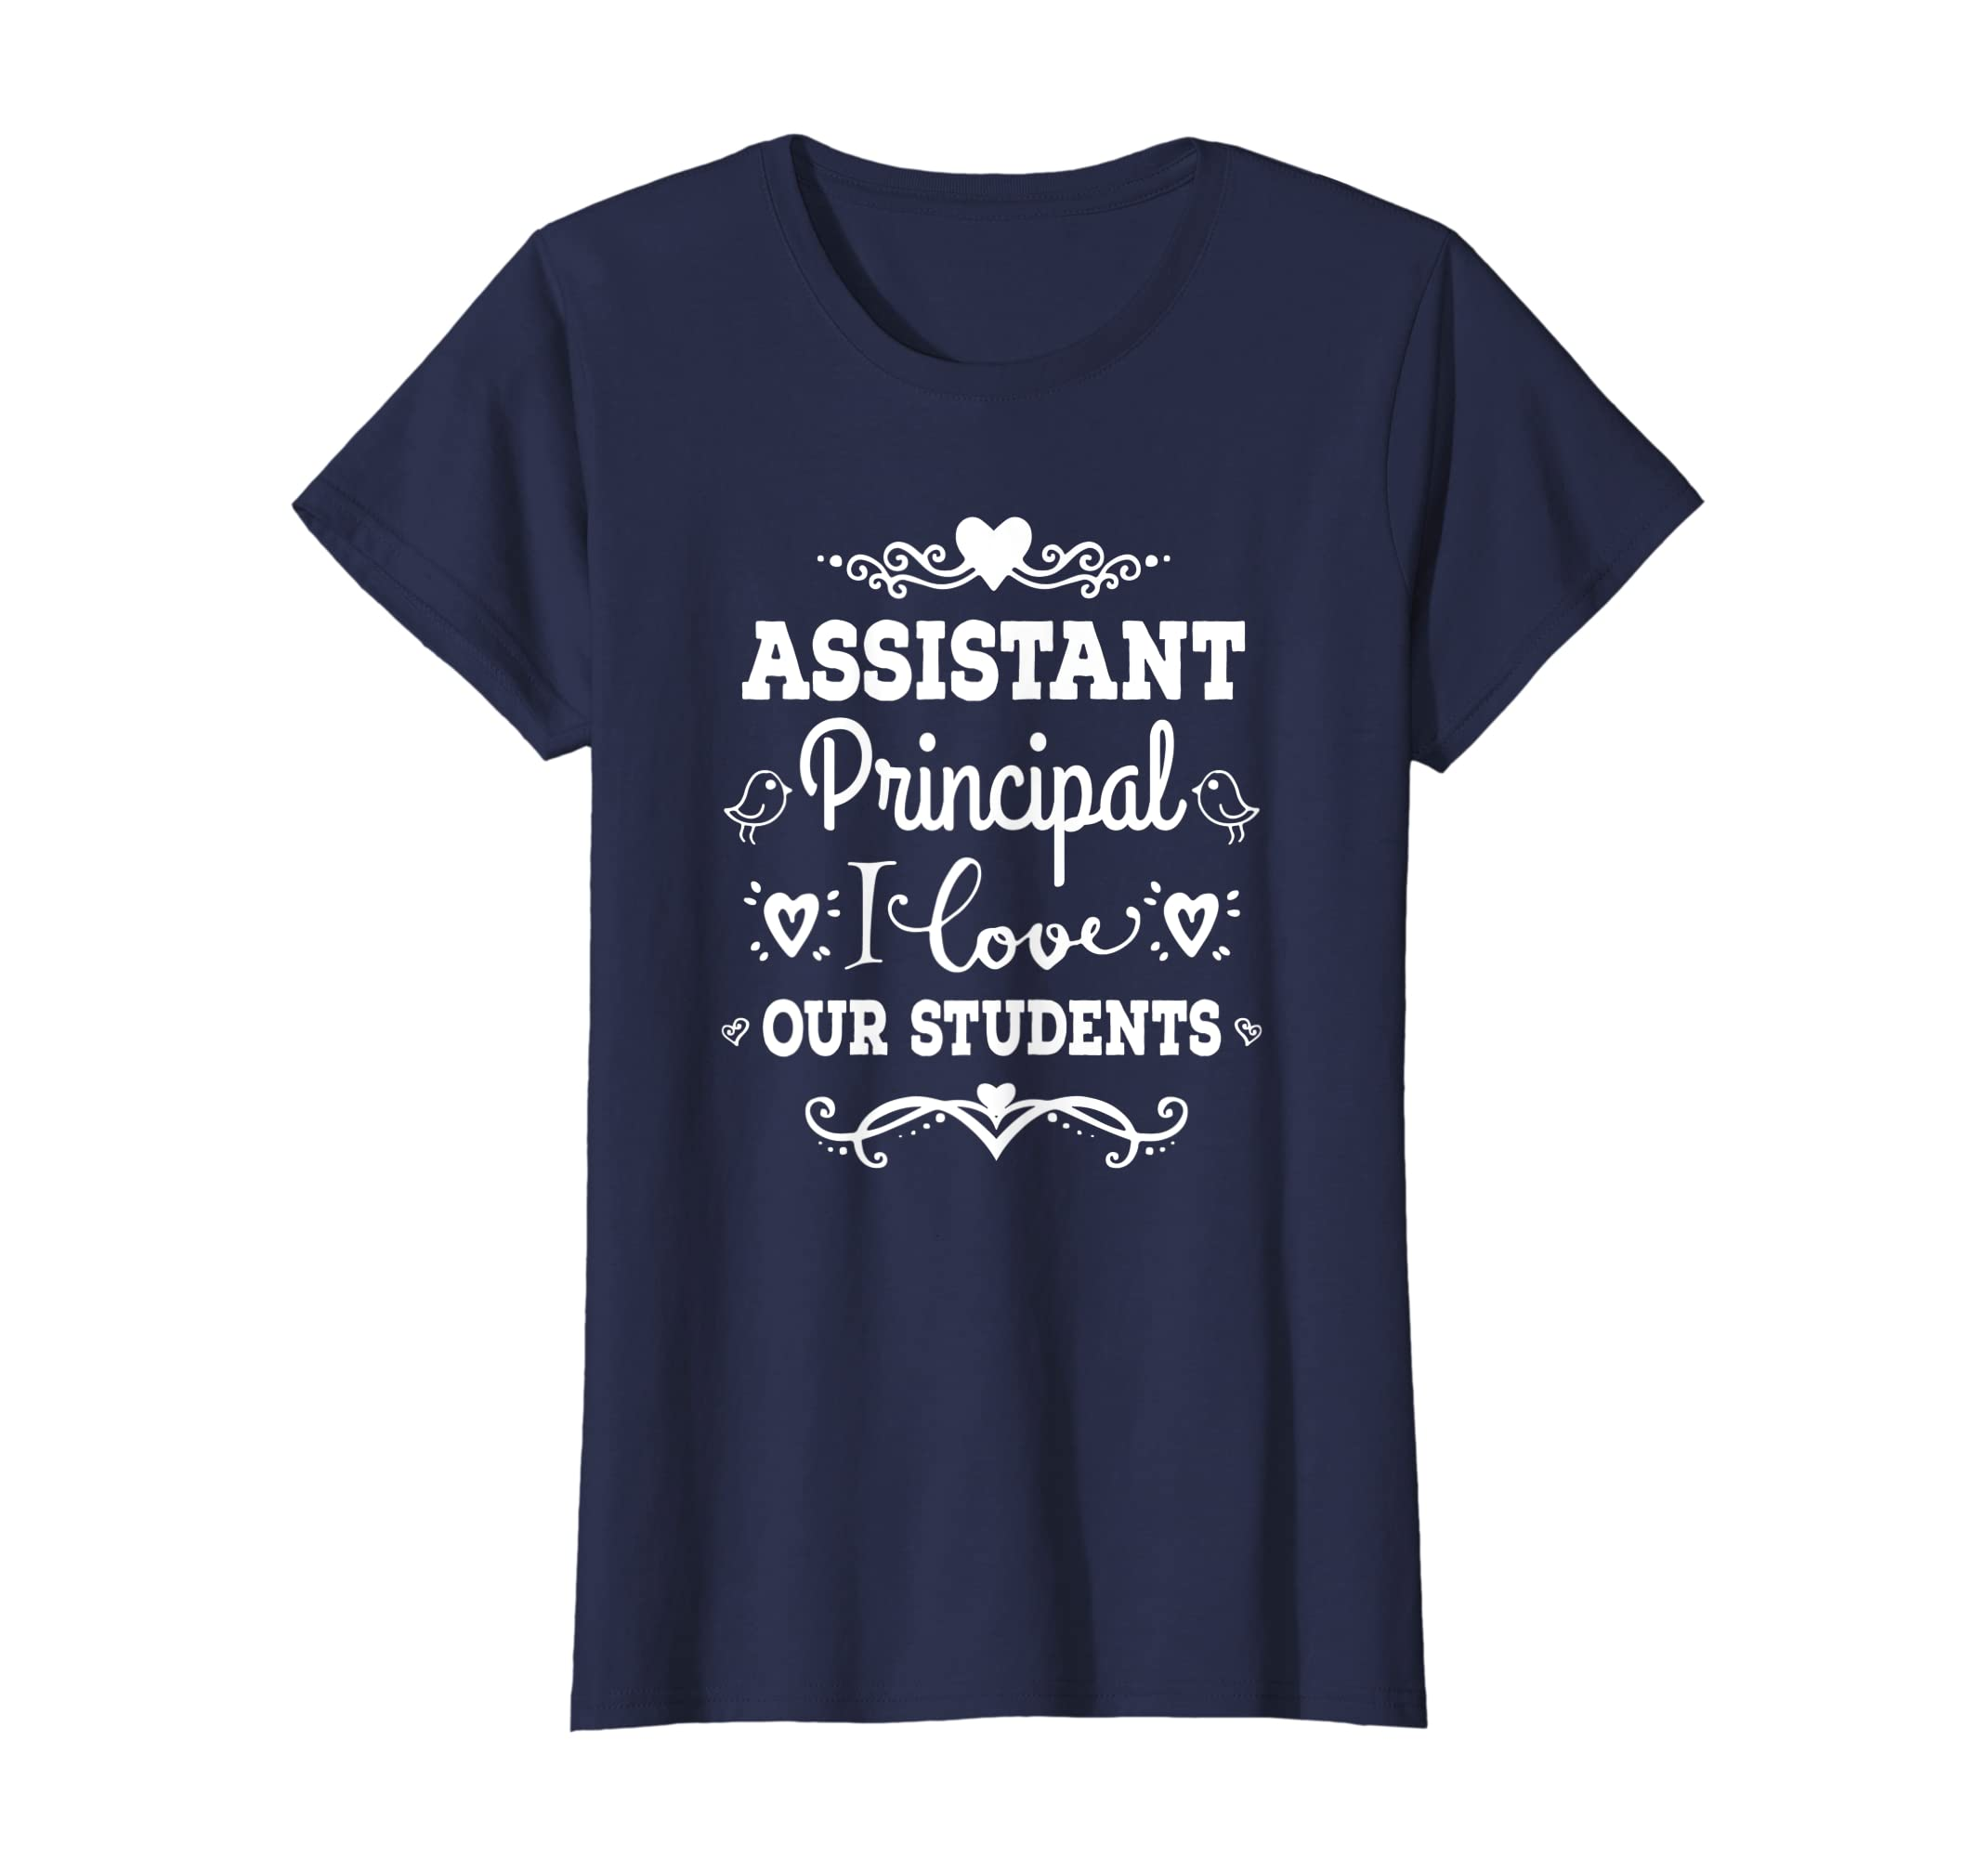 afaf8d83 Amazon.com: Assistant Principal T-shirt Cute Back To School Gift Tee:  Clothing